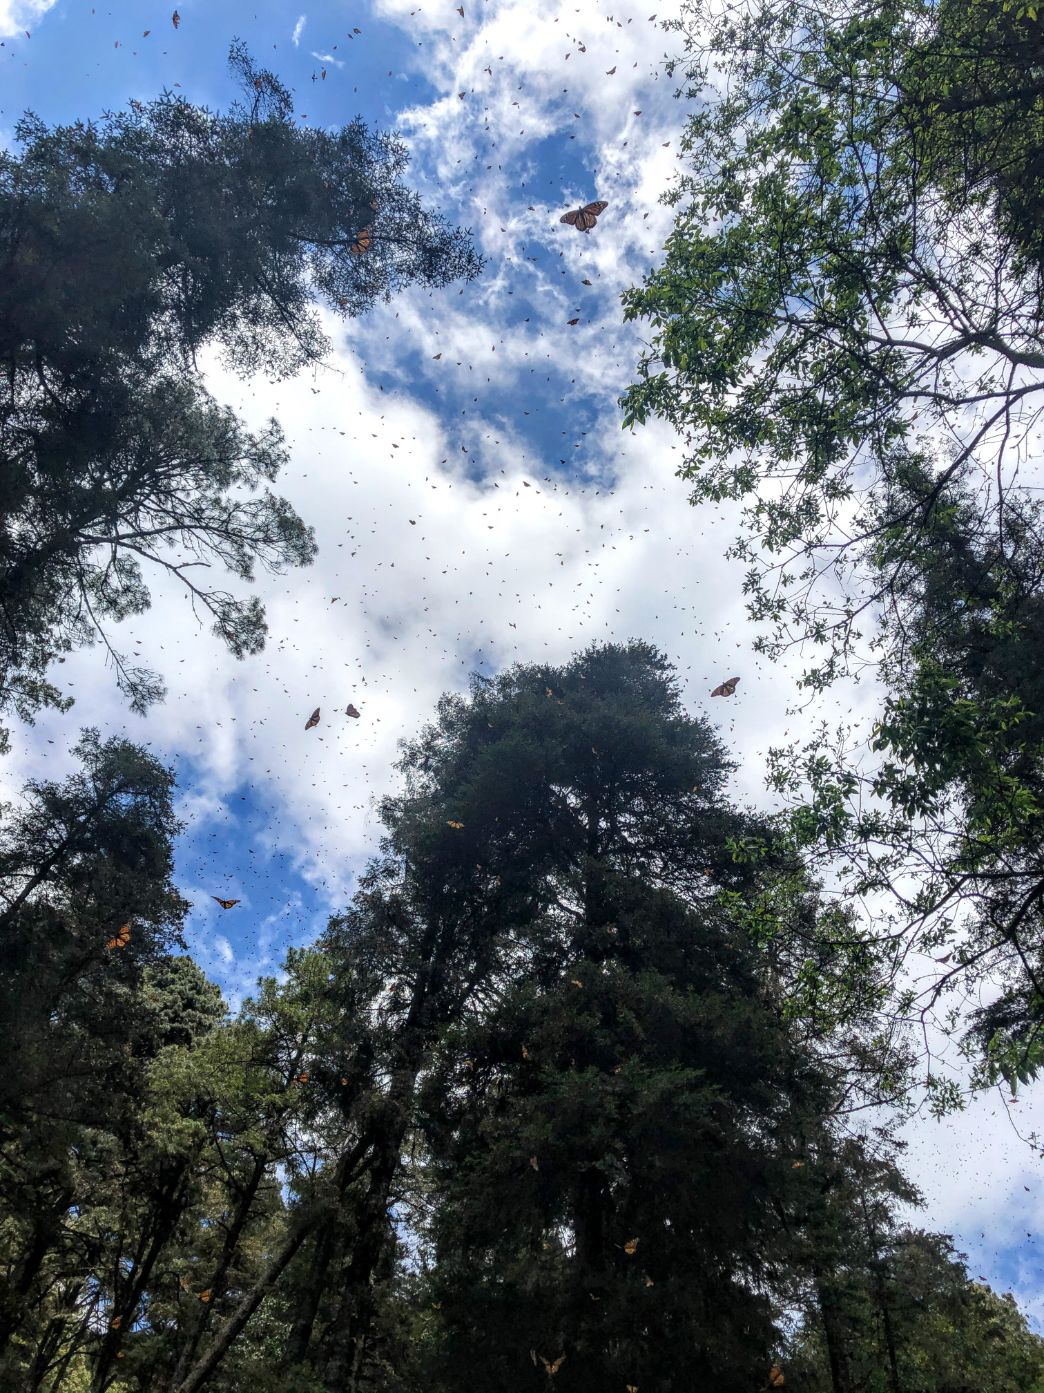 monarch butterflies flying among trees and blue skies at Cerro Pelon forest